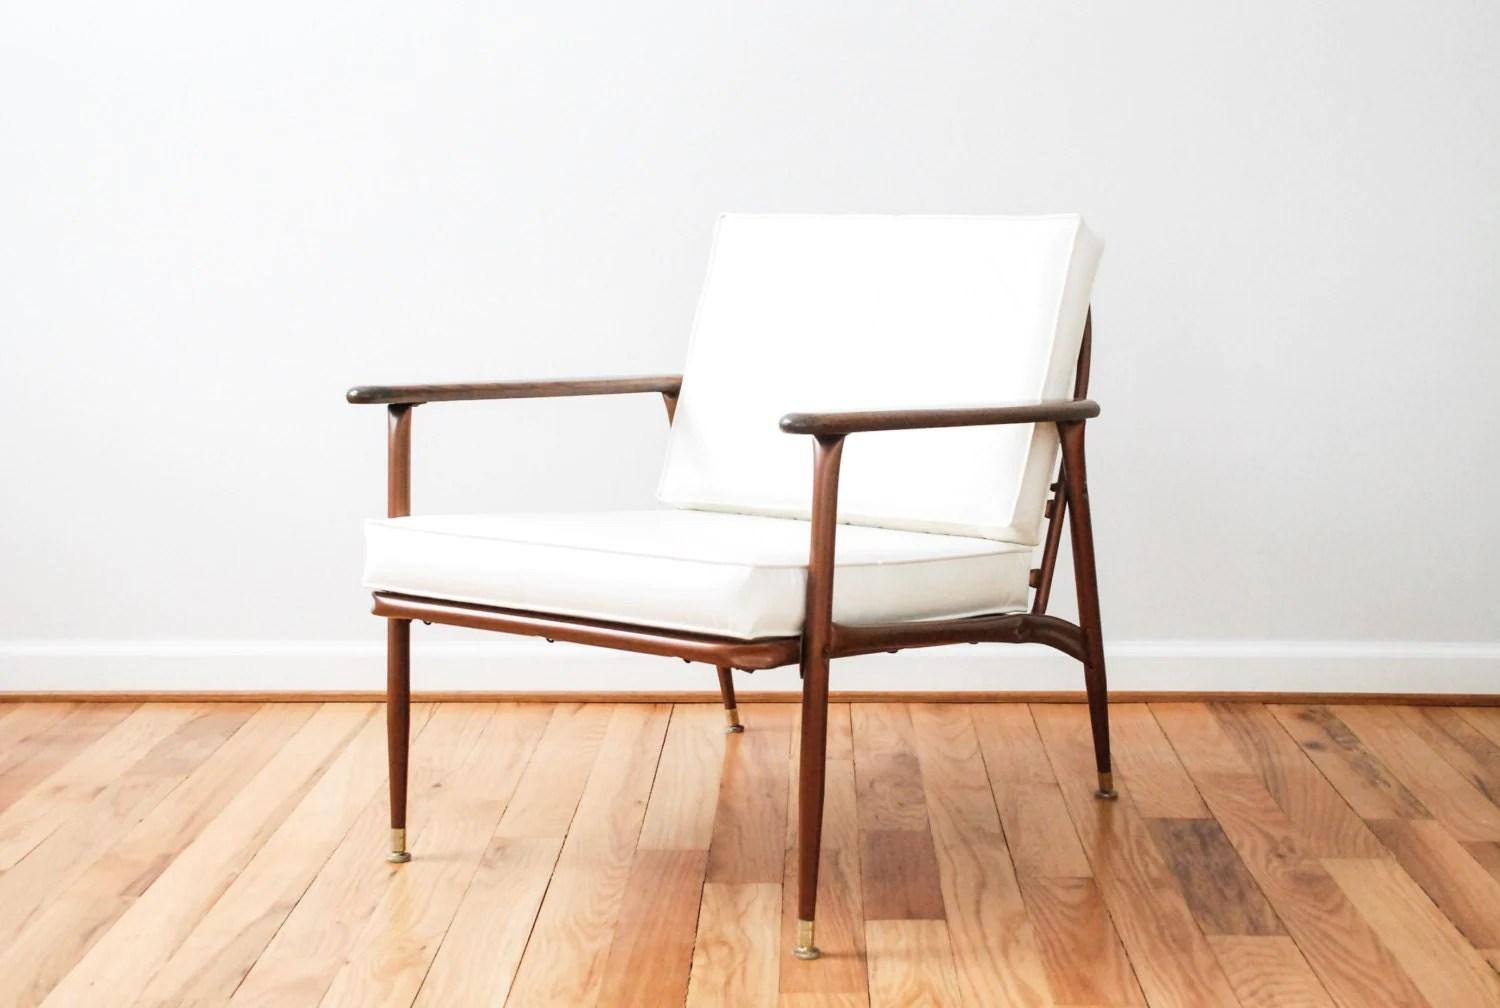 Mid Century Lounge Chair Mid Century Chair Danish Chair Mid Century Lounge Chair